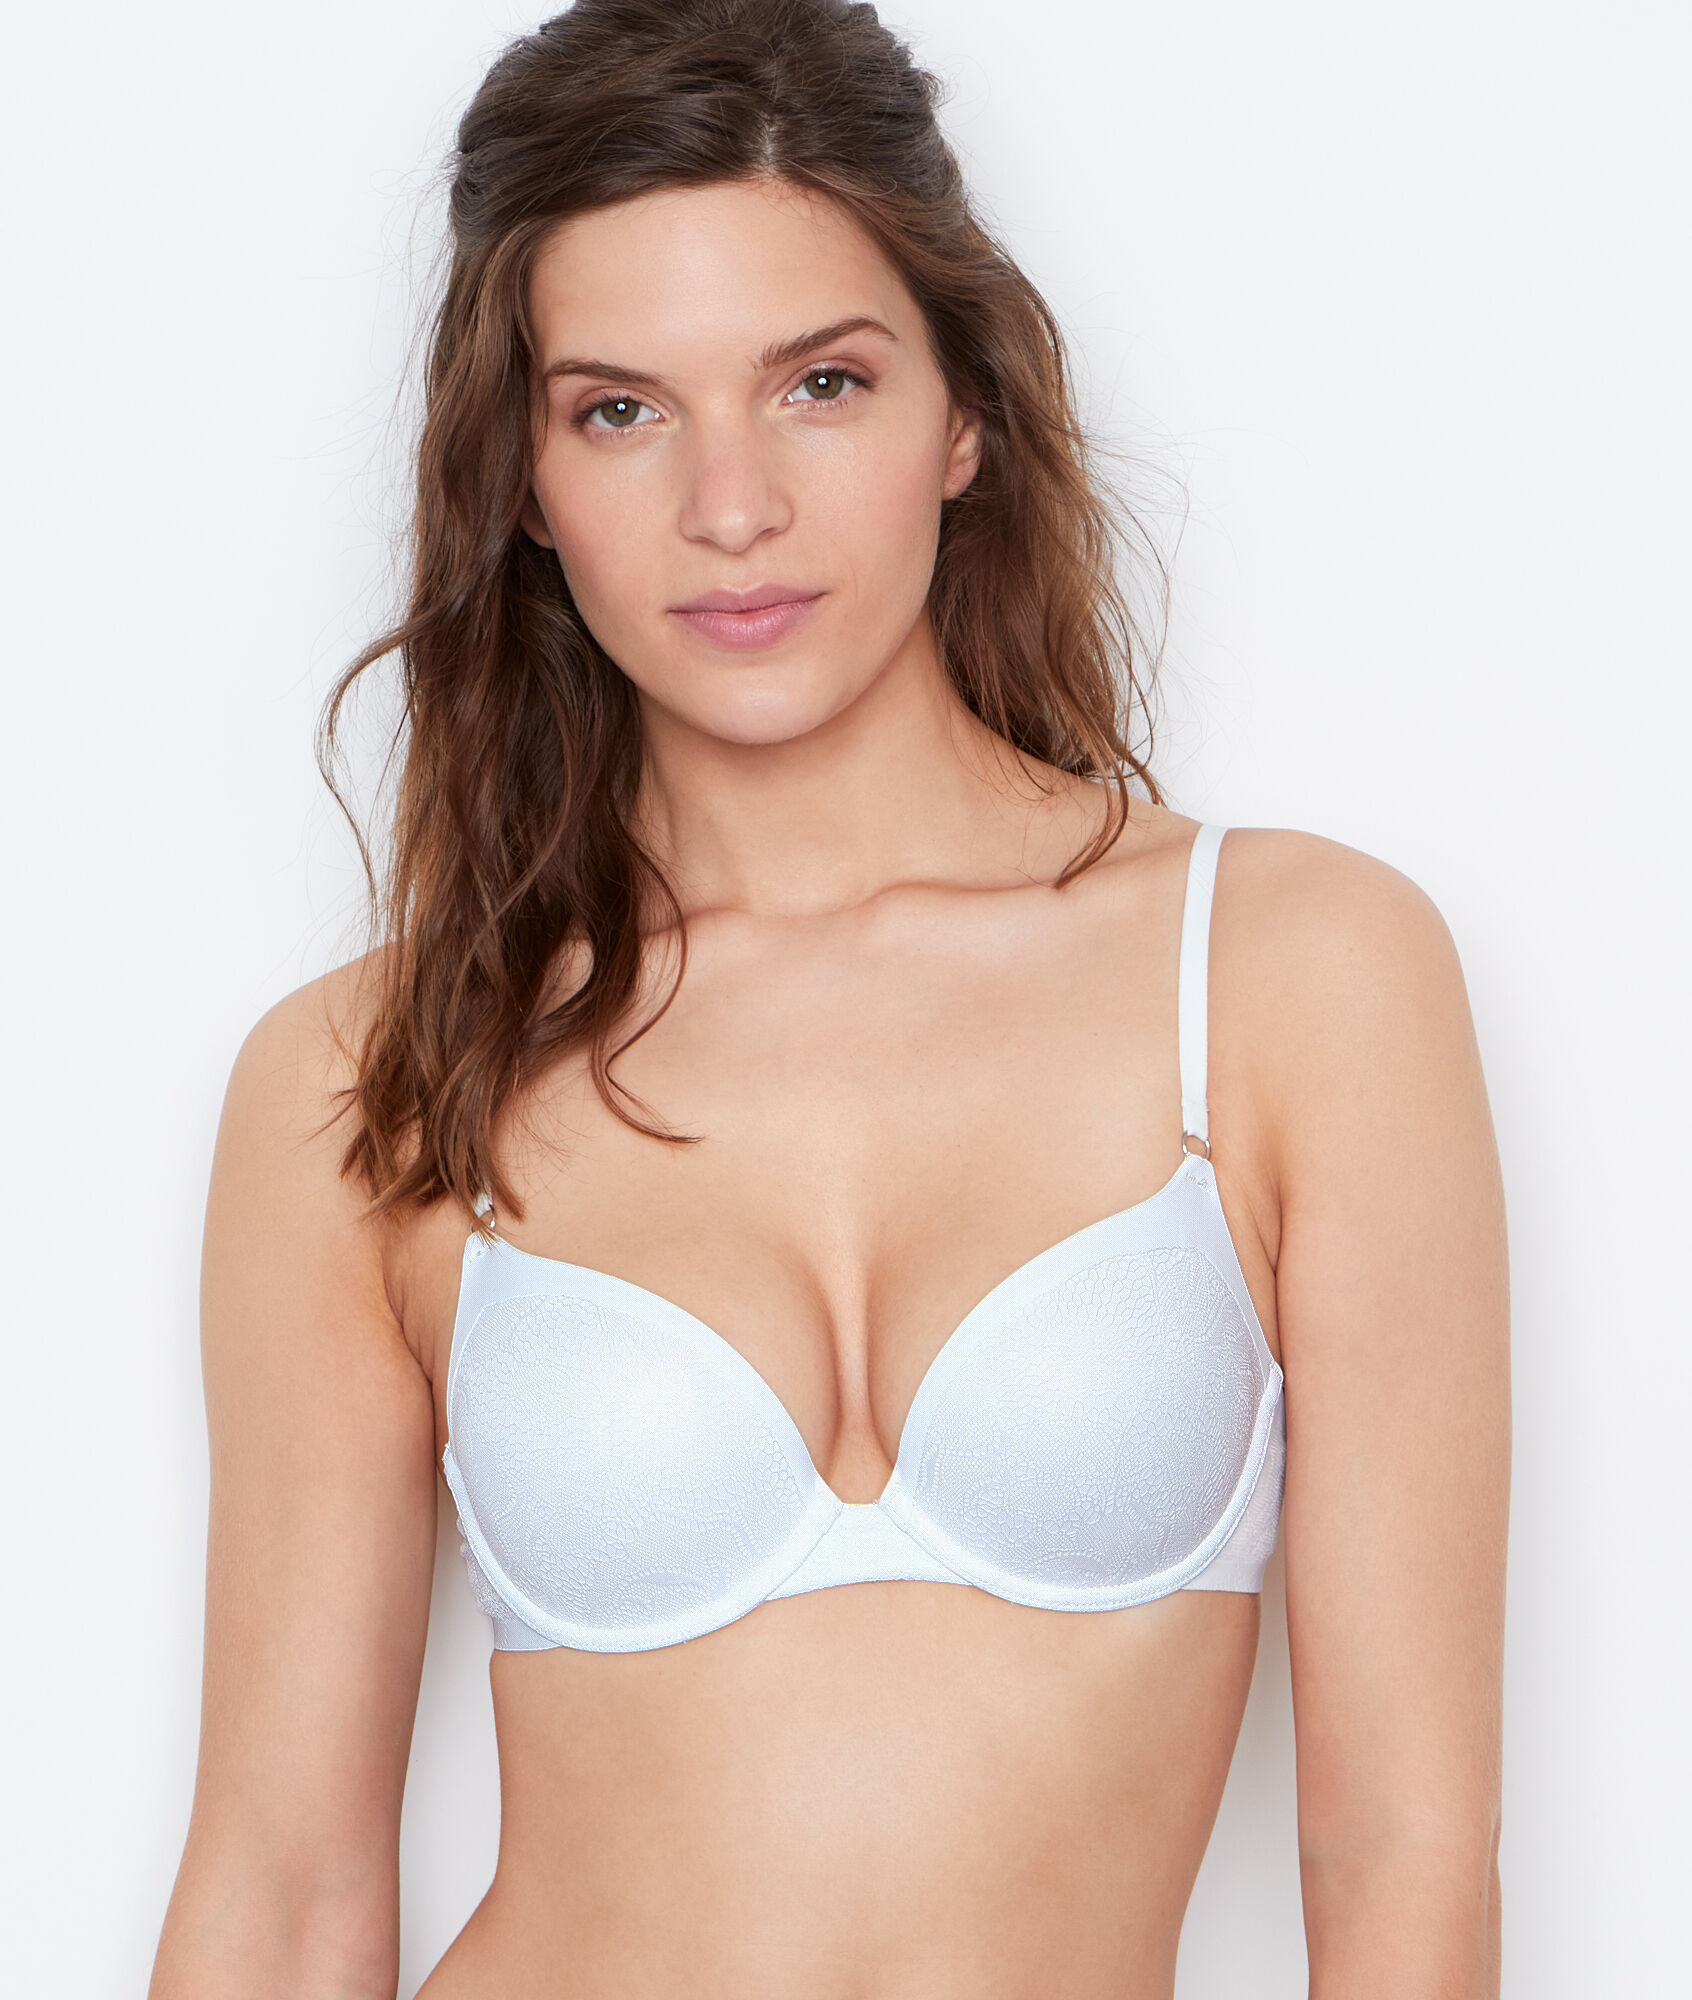 Victoria's Secret The Incredible Lightweight Max by Victoria Sport Front-close Sport Bra. $ $ Love It BRAS(CLEARANCE/BRAS) Victoria Sport The Incredible Lightweight Max by Victoria Sport Bra Quick View Quick View. Victoria Sport The Incredible Lightweight Max by Victoria Sport Bra.